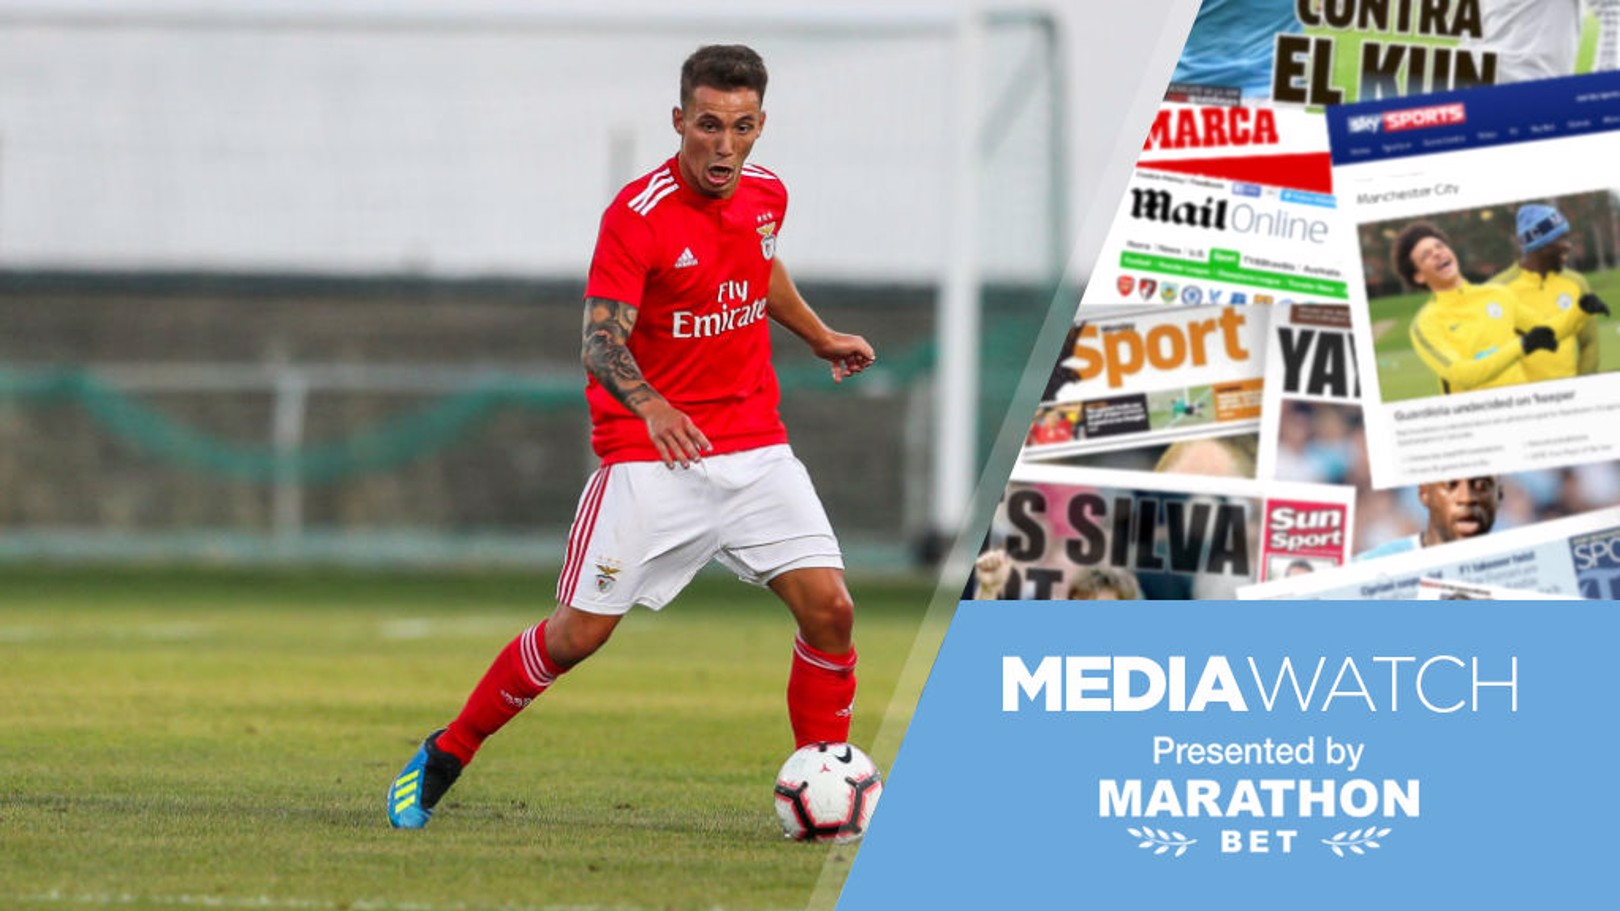 MEDIA WATCH: City are reportedly chasing two Benfica players, according to this morning's papers